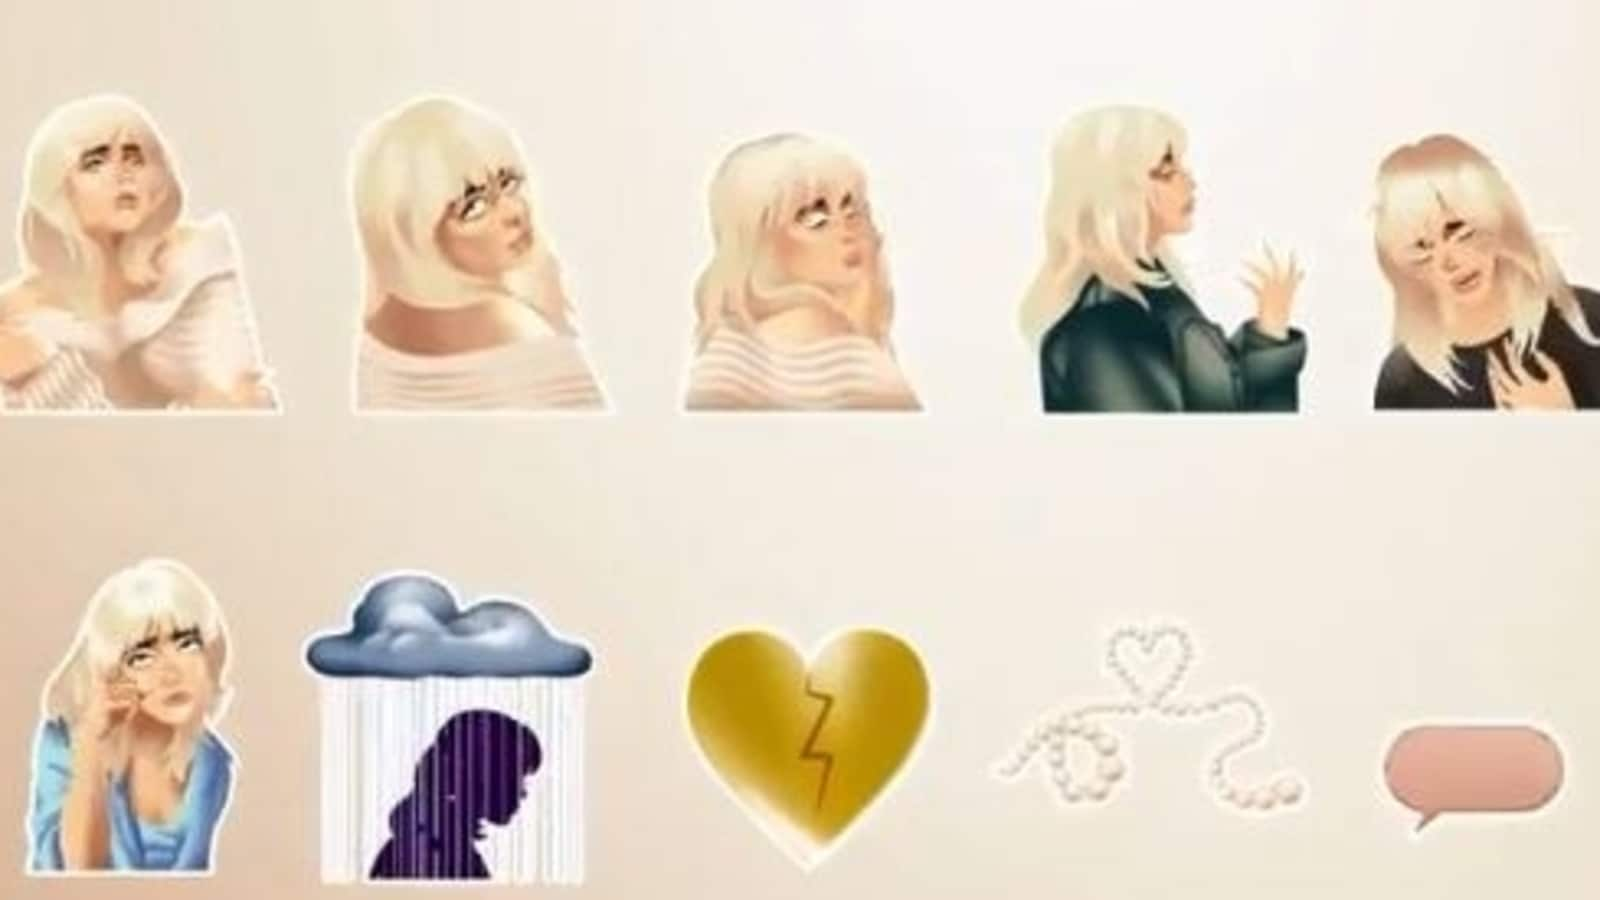 WhatsApp launches Billie Eilish animated sticker pack; Here's how to download it - HT Tech